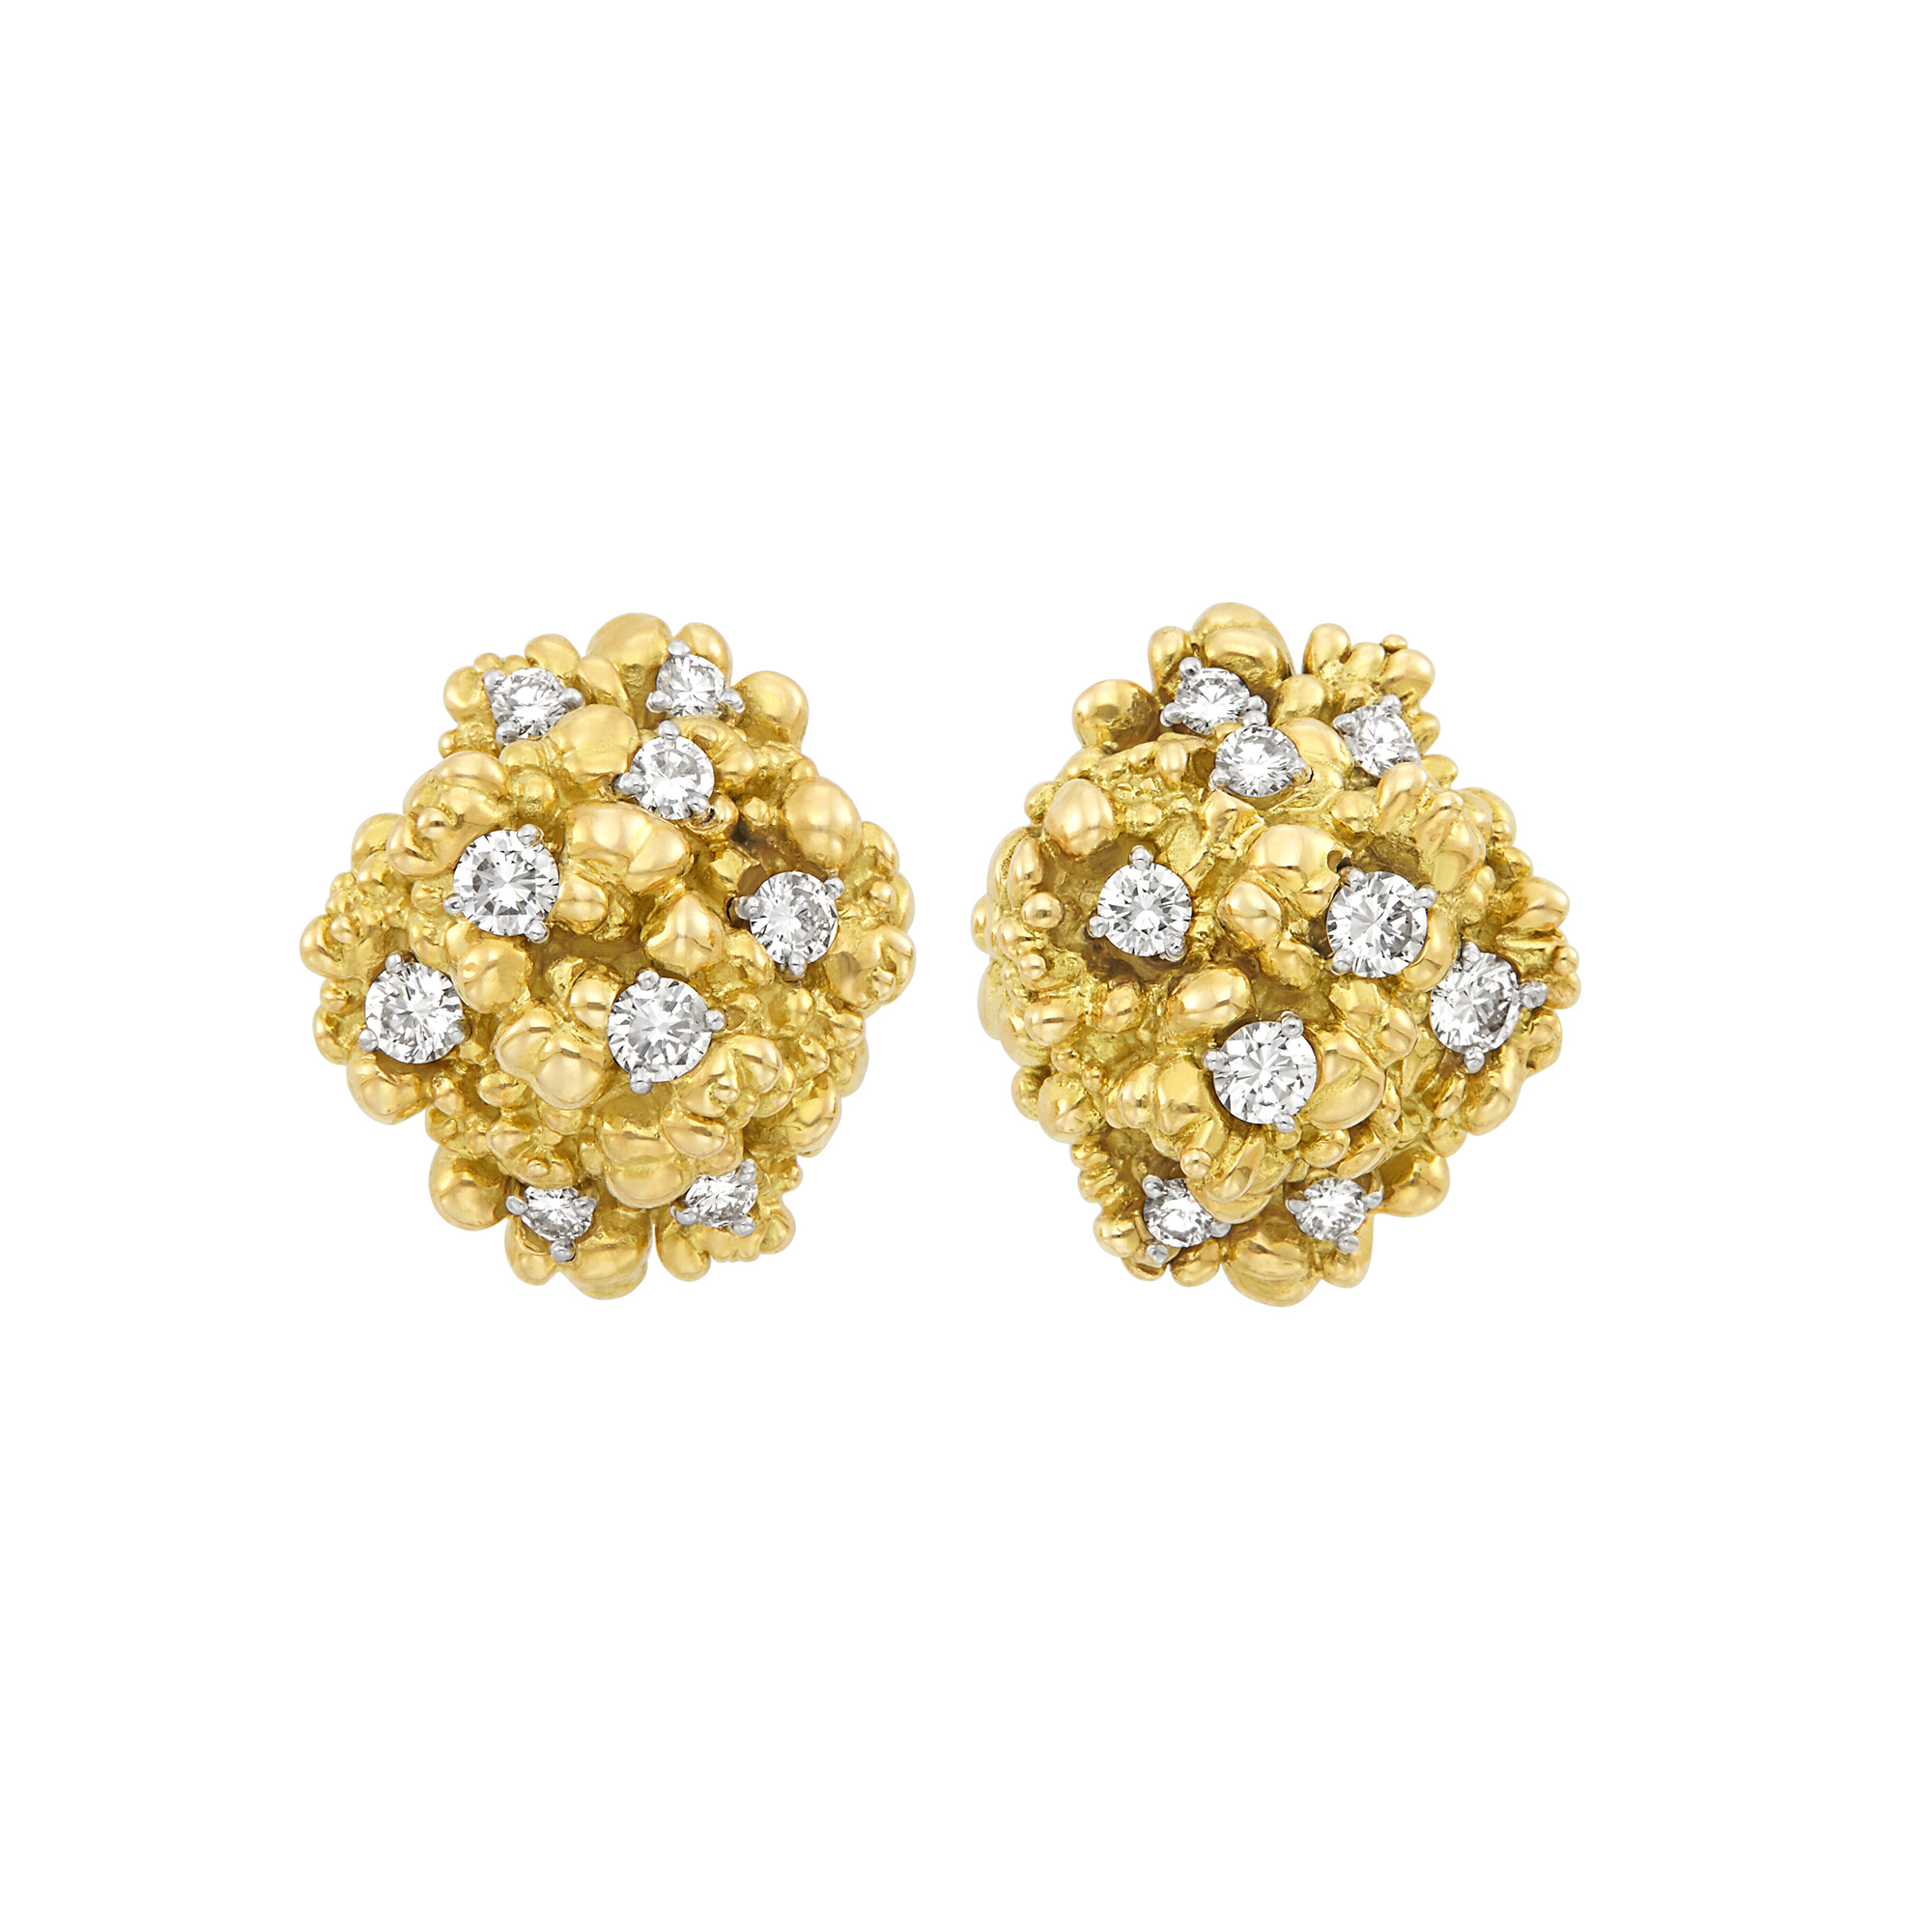 Lot image - Pair of Nugget Gold and Diamond Cluster Earrings, Cartier, France